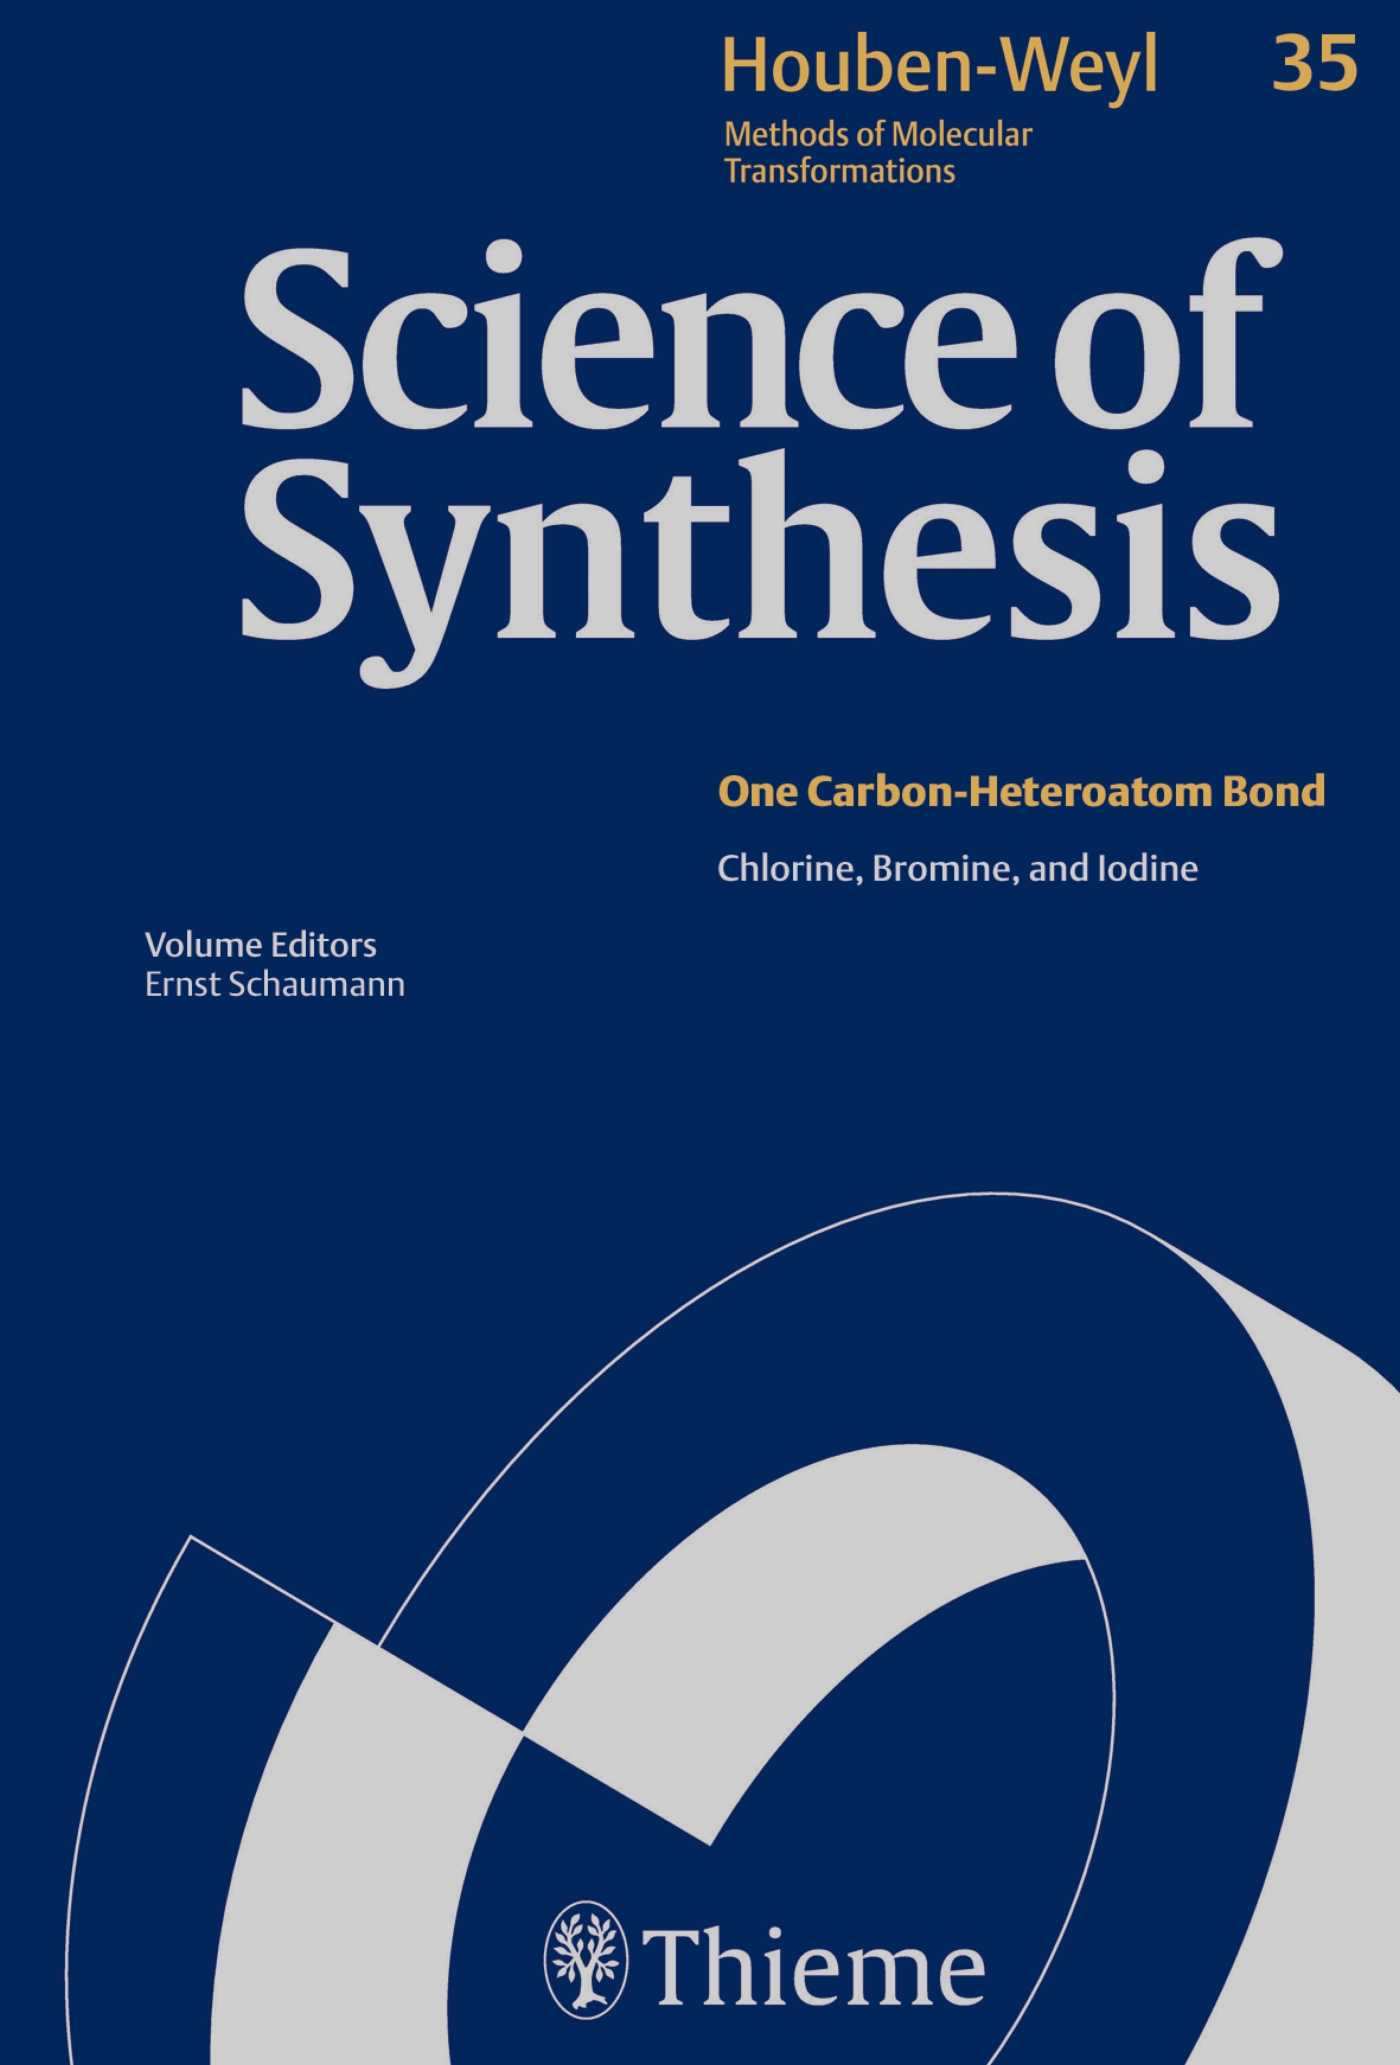 Science of Synthesis: Houben-Weyl Methods of Molecular Transformations  Vol. 35